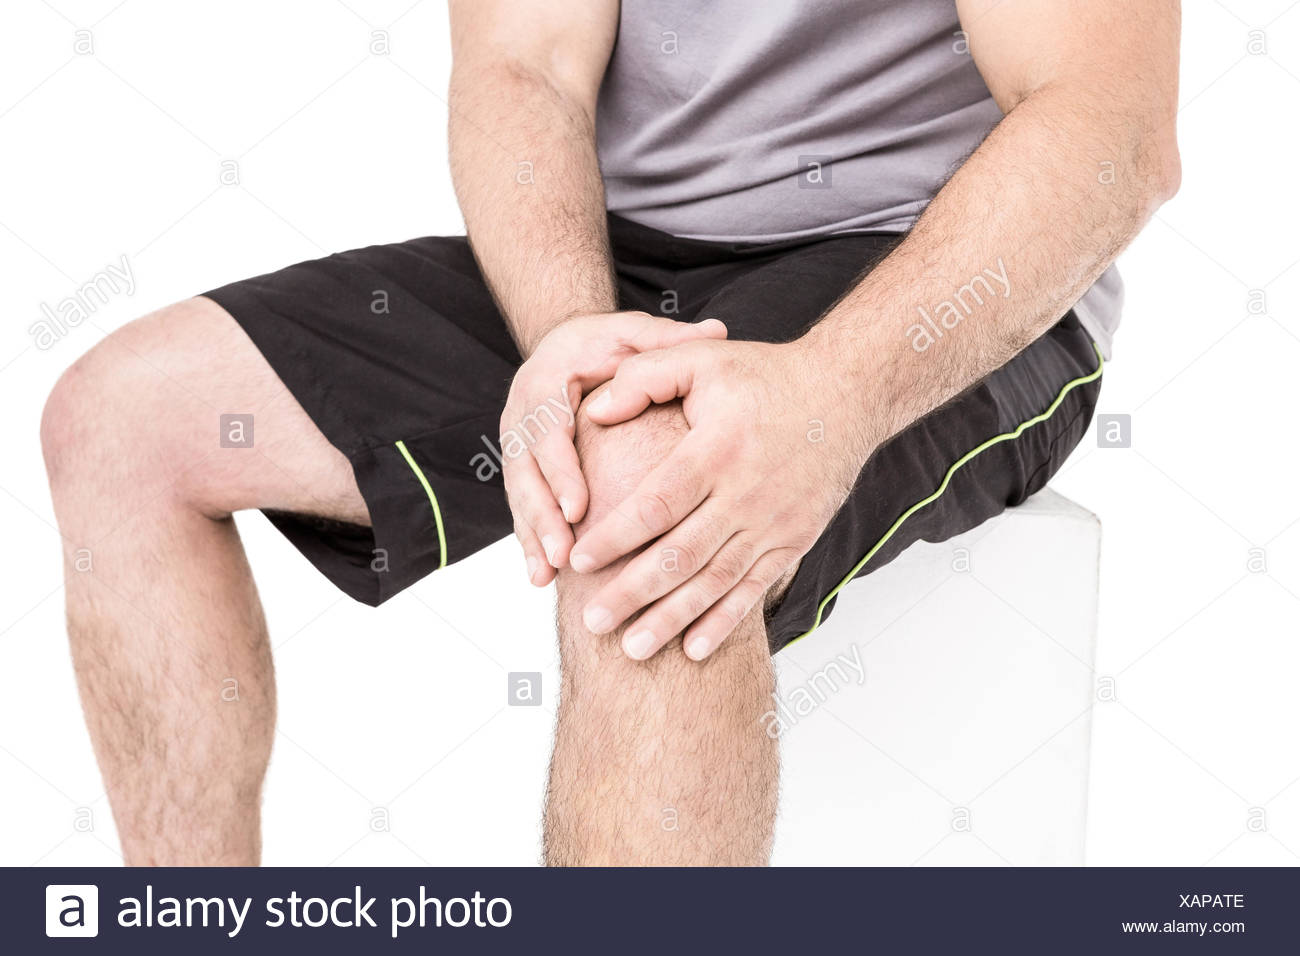 Athlete clutching knee in excruciating pain - Stock Image